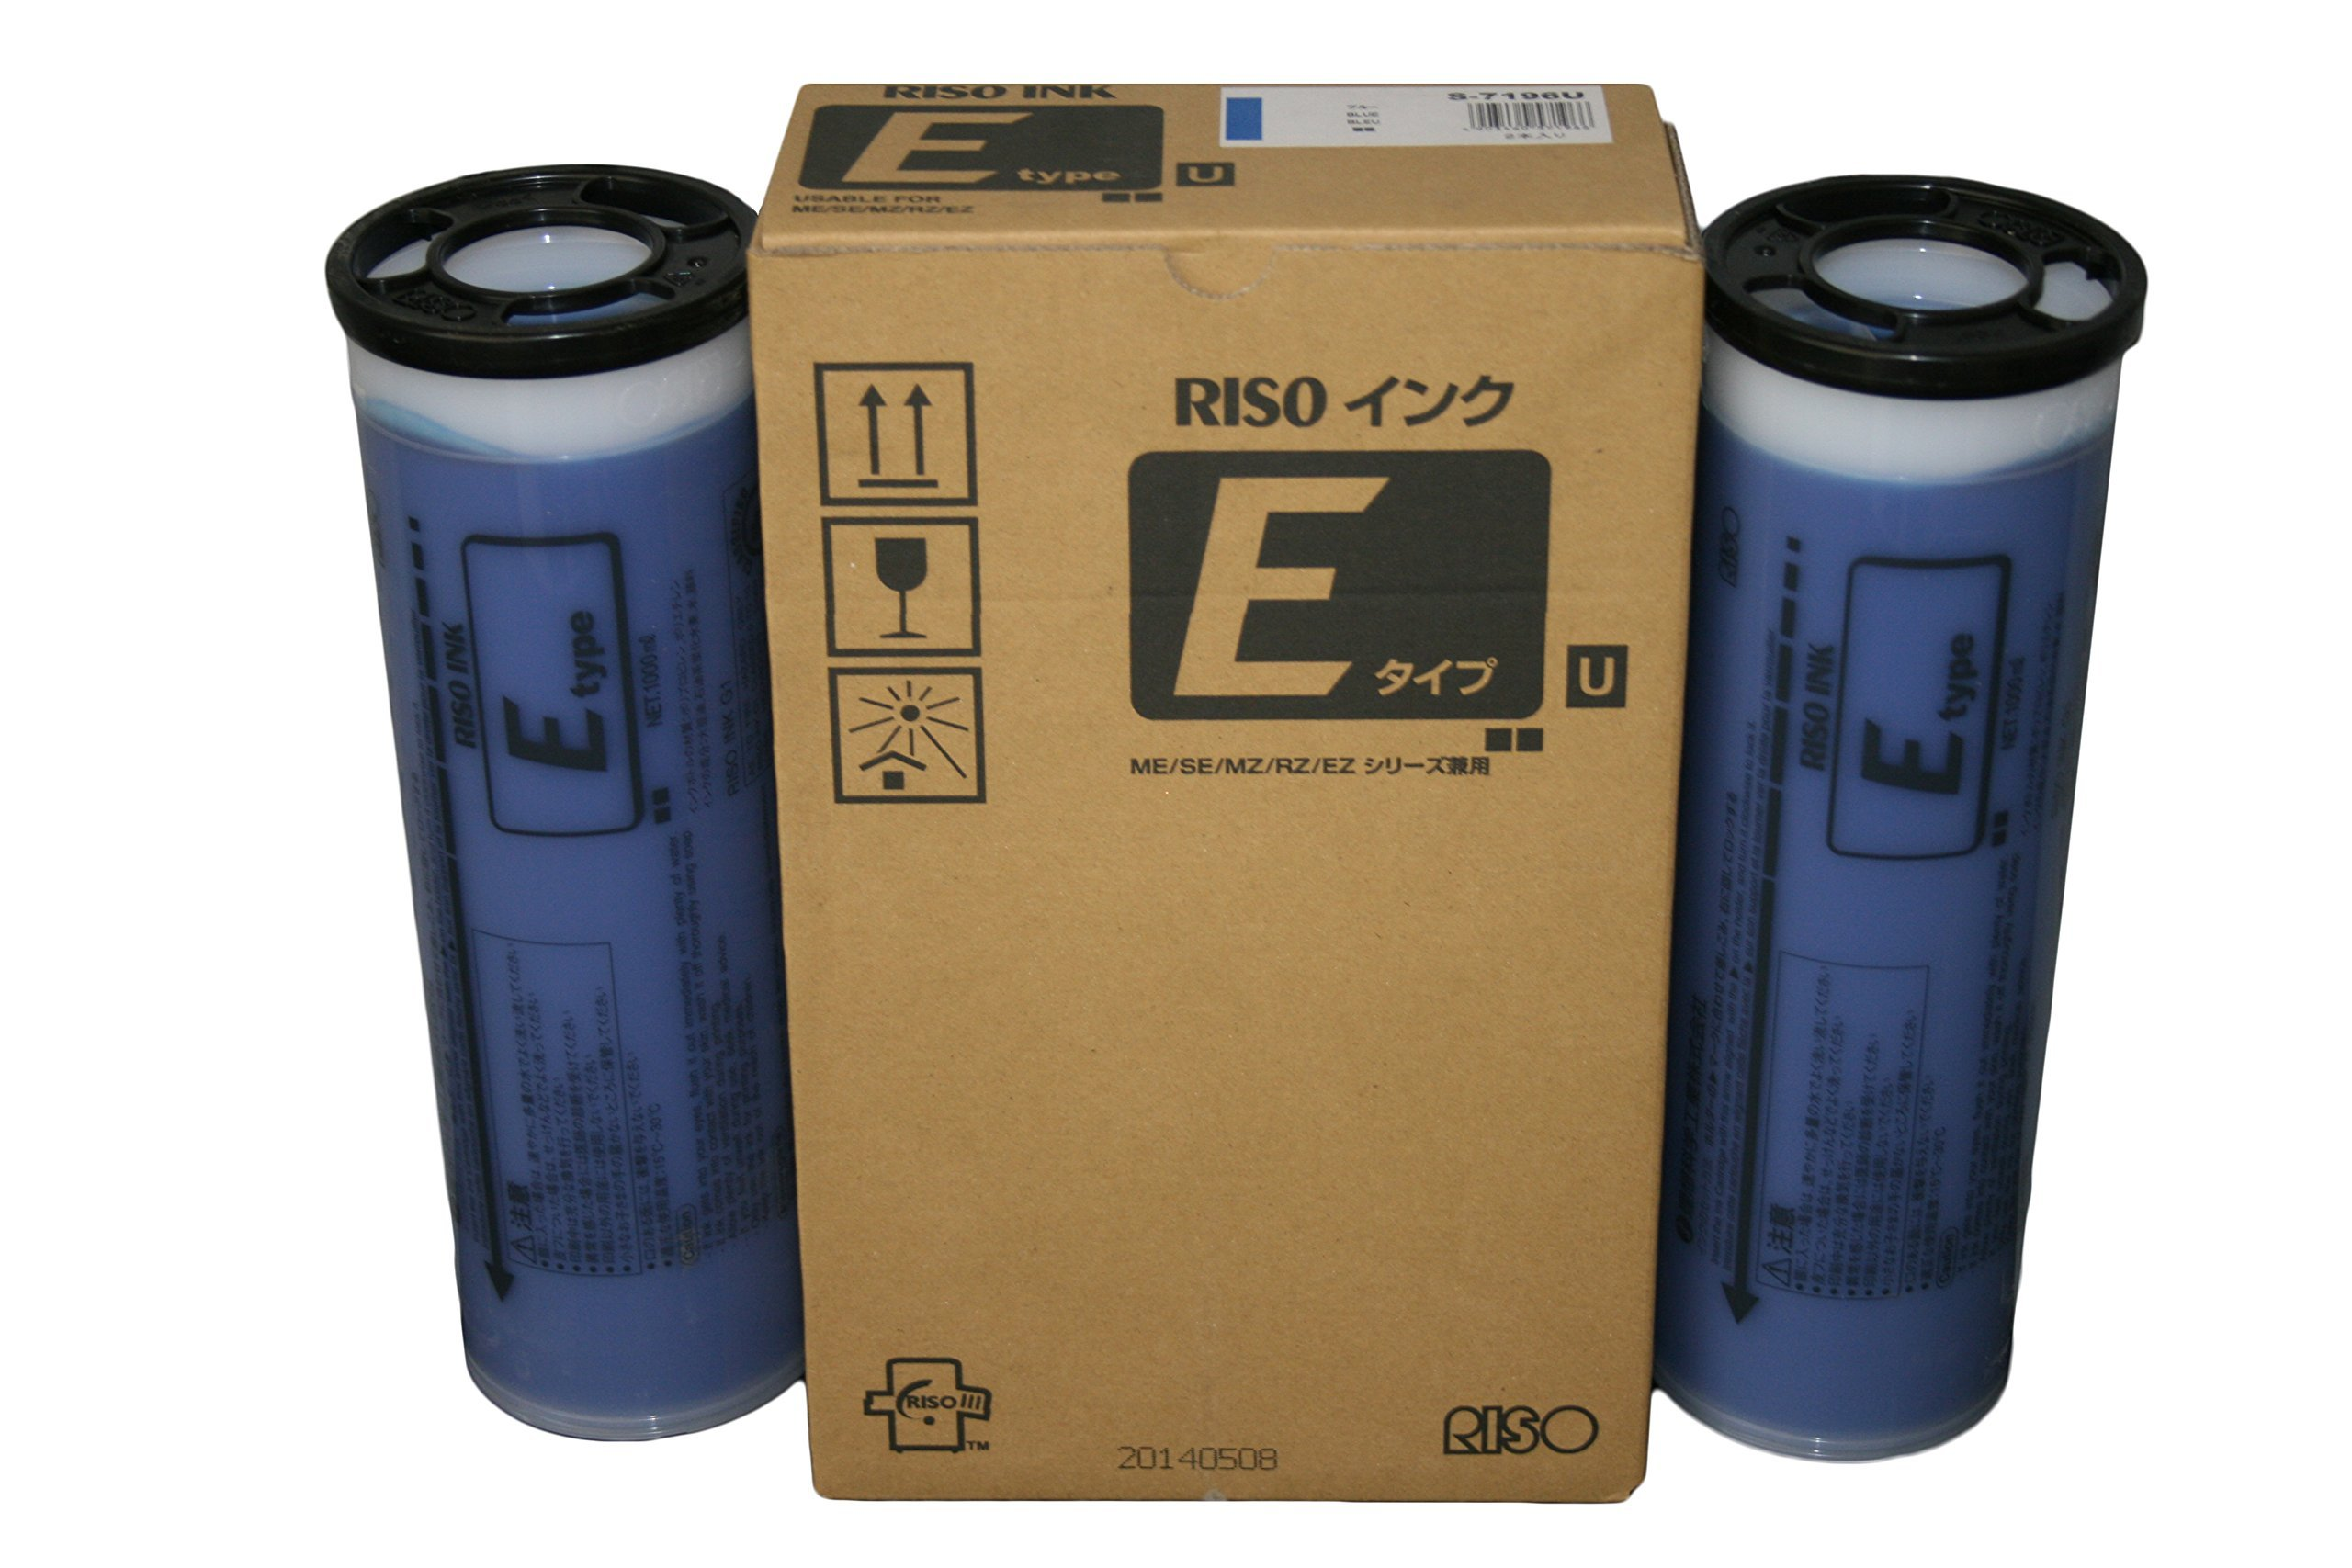 2 Riso S-7196 Blue Ink, for Risograph EZ, MZ, and RZ Series Duplicators by RISO (Image #2)